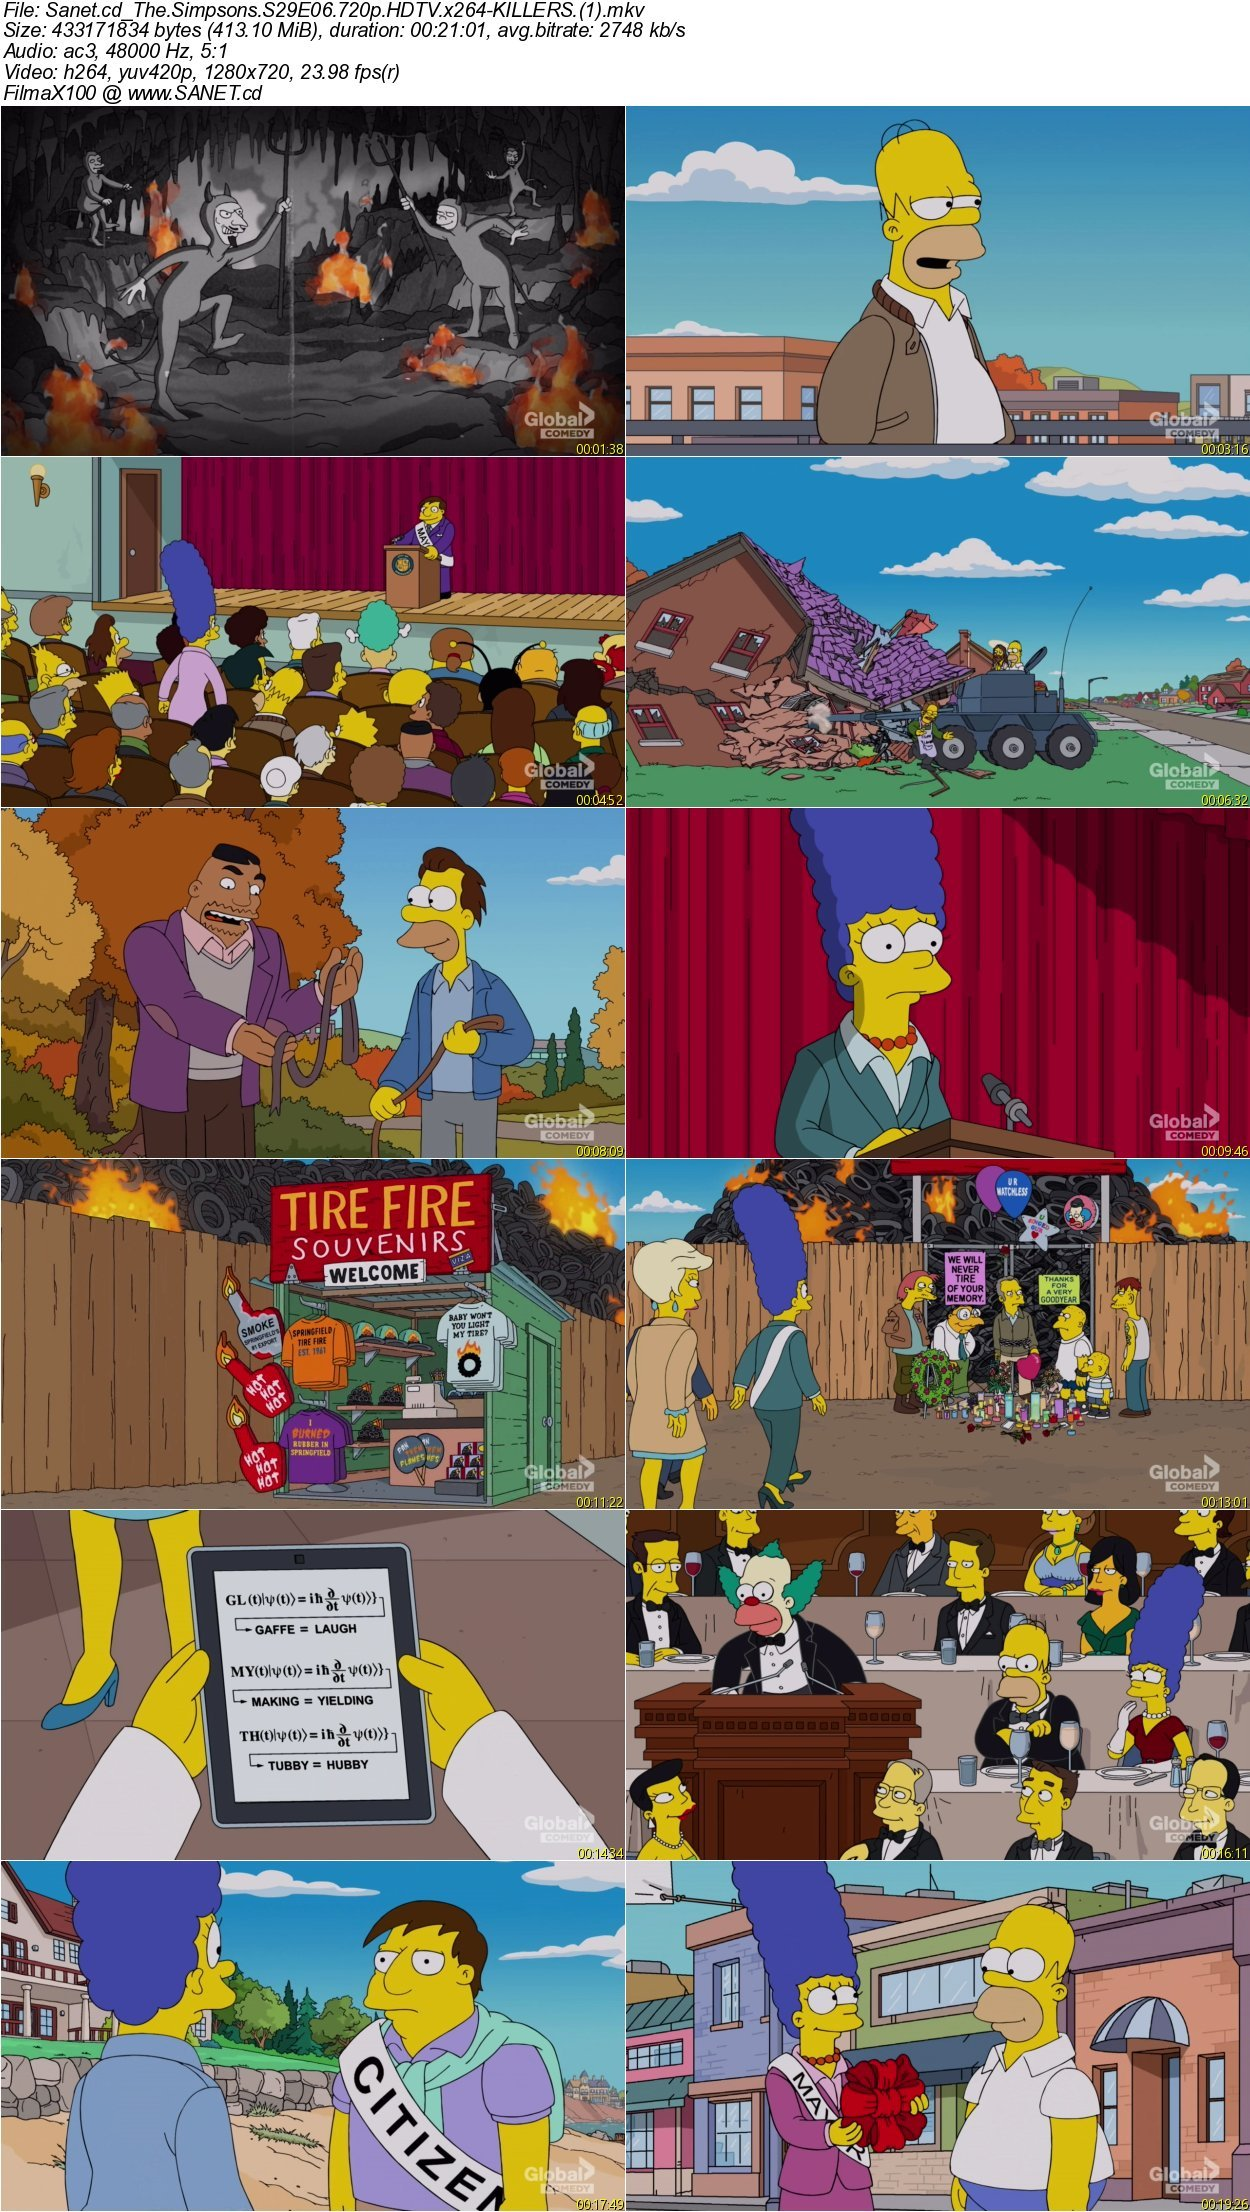 the simpsons s29e06